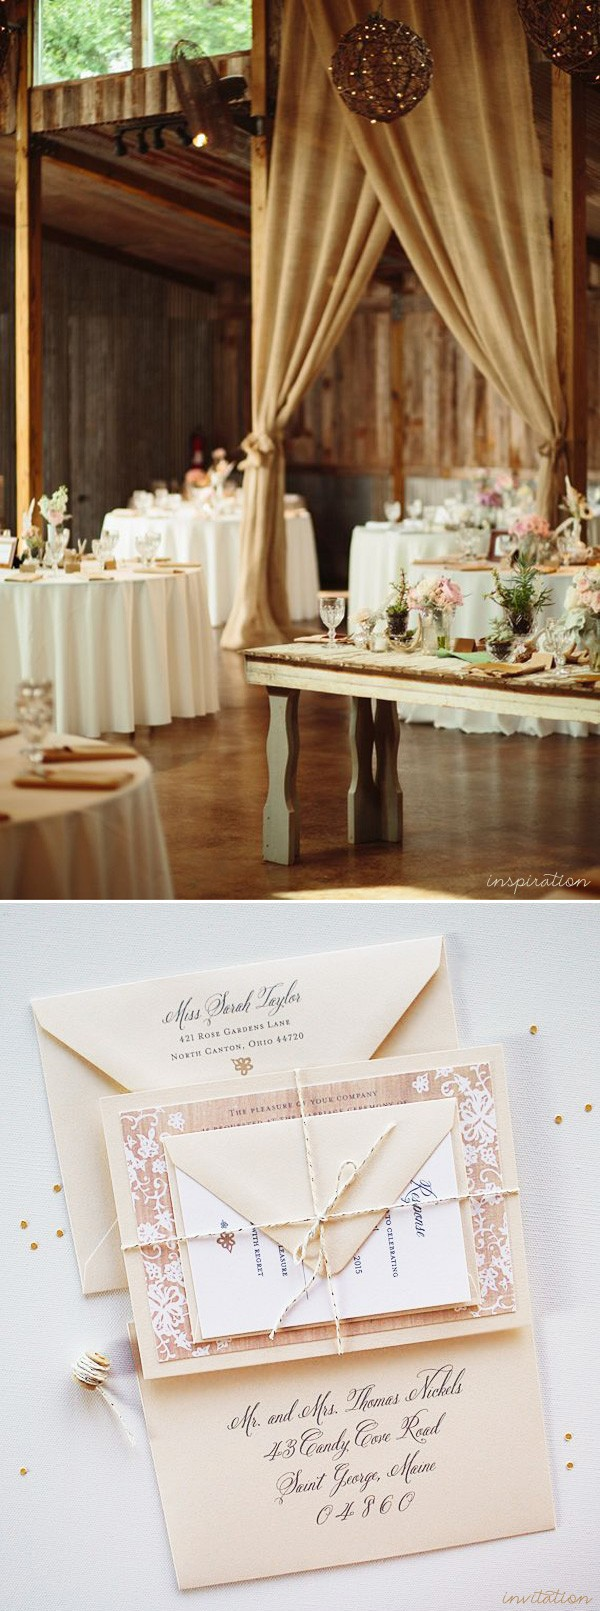 Vintage chic + burlap rustic wedding invitation inspiration | www.mospensstudio.com